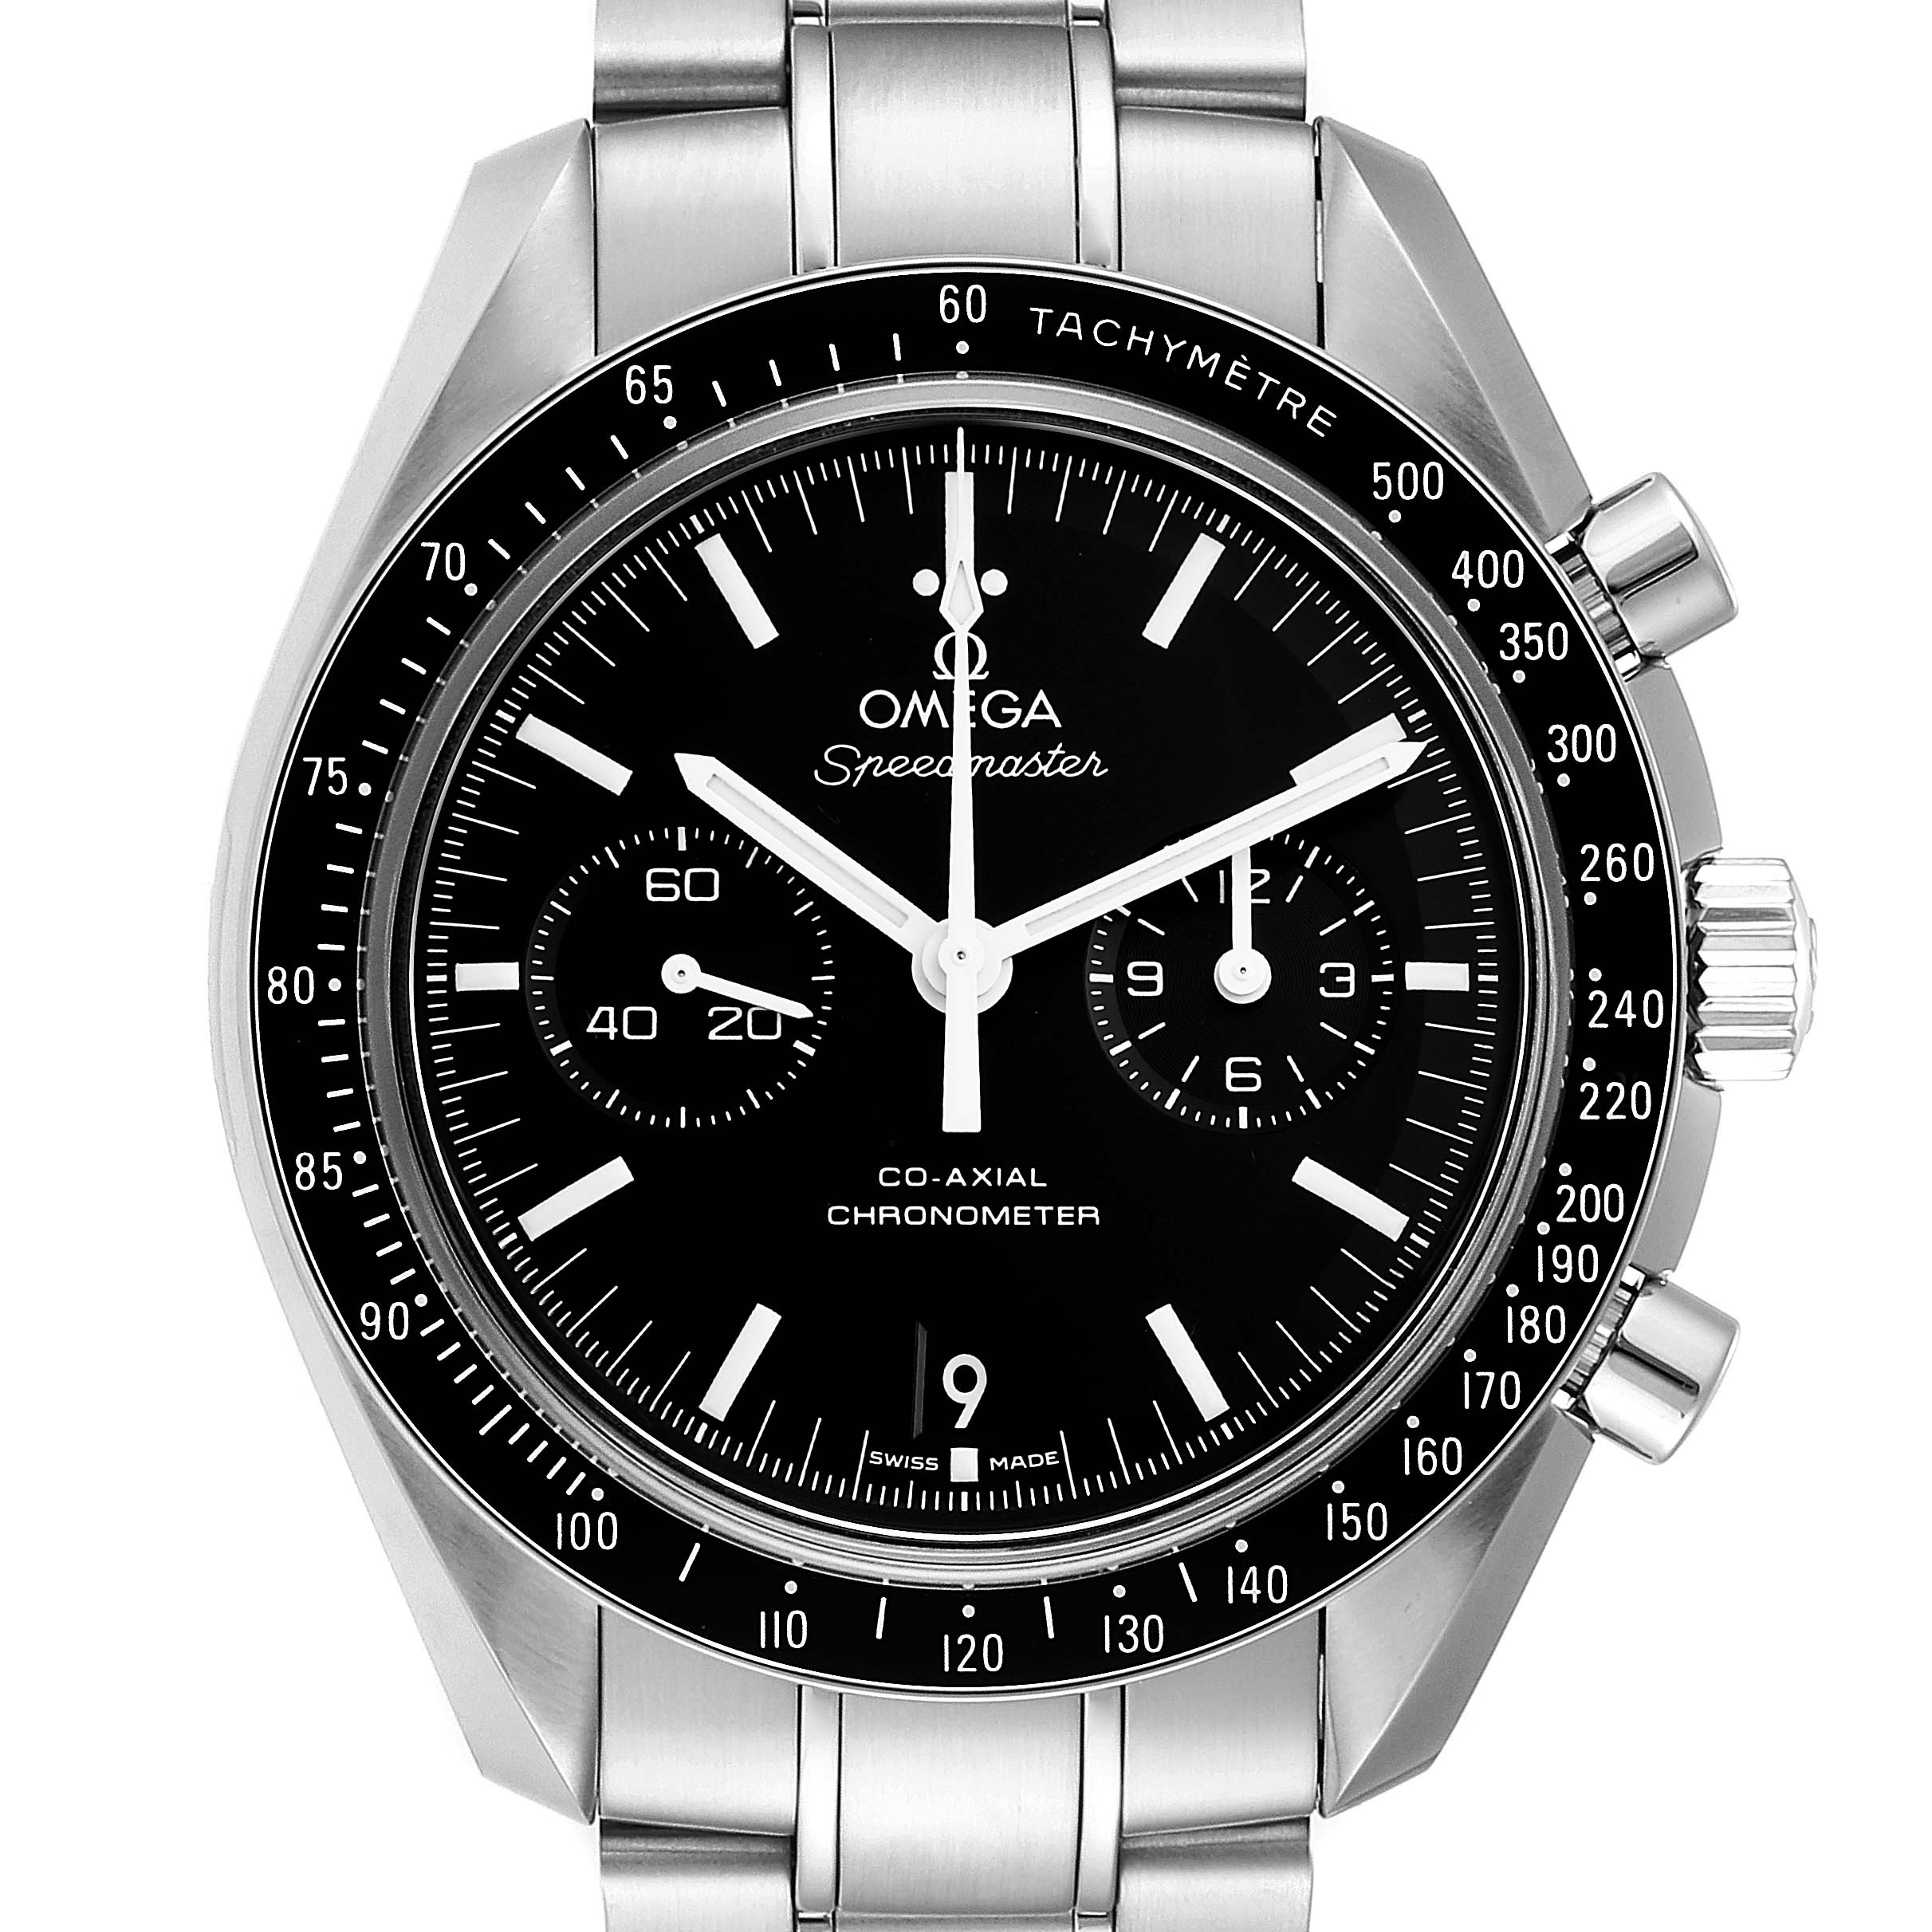 Photo of Omega Speedmaster Co-Axial Chronograph Watch 311.30.44.51.01.002 Unworn